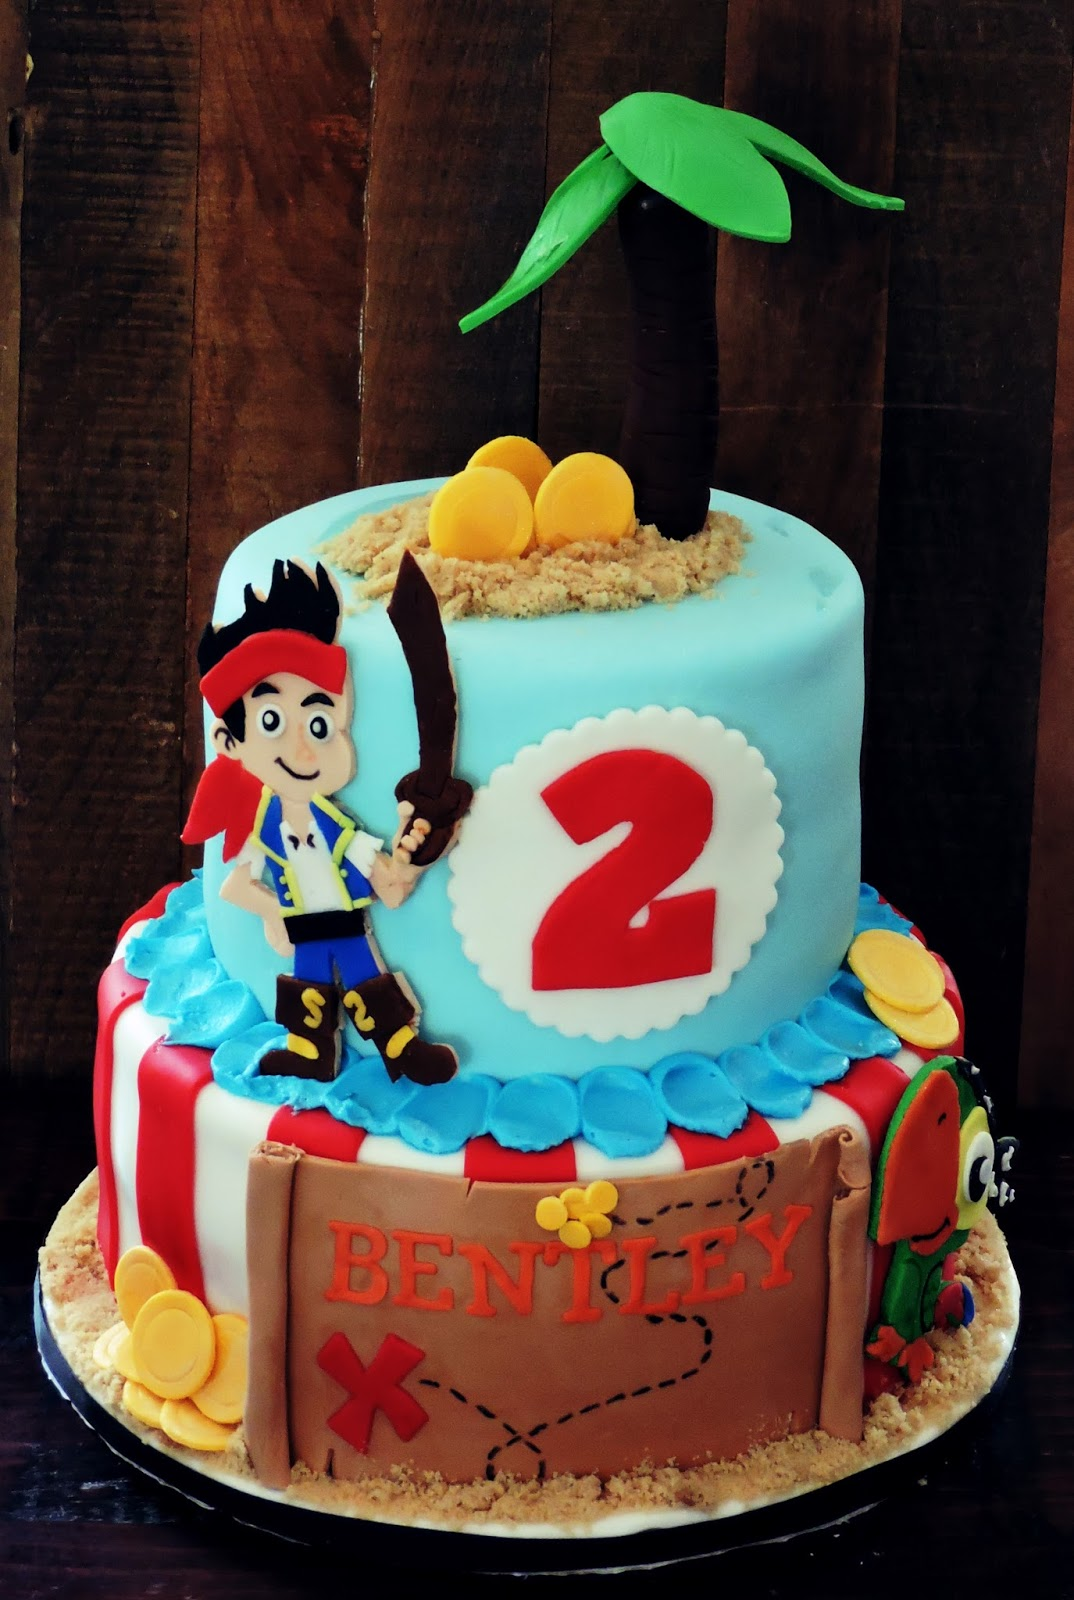 Pirate cake - photo#27